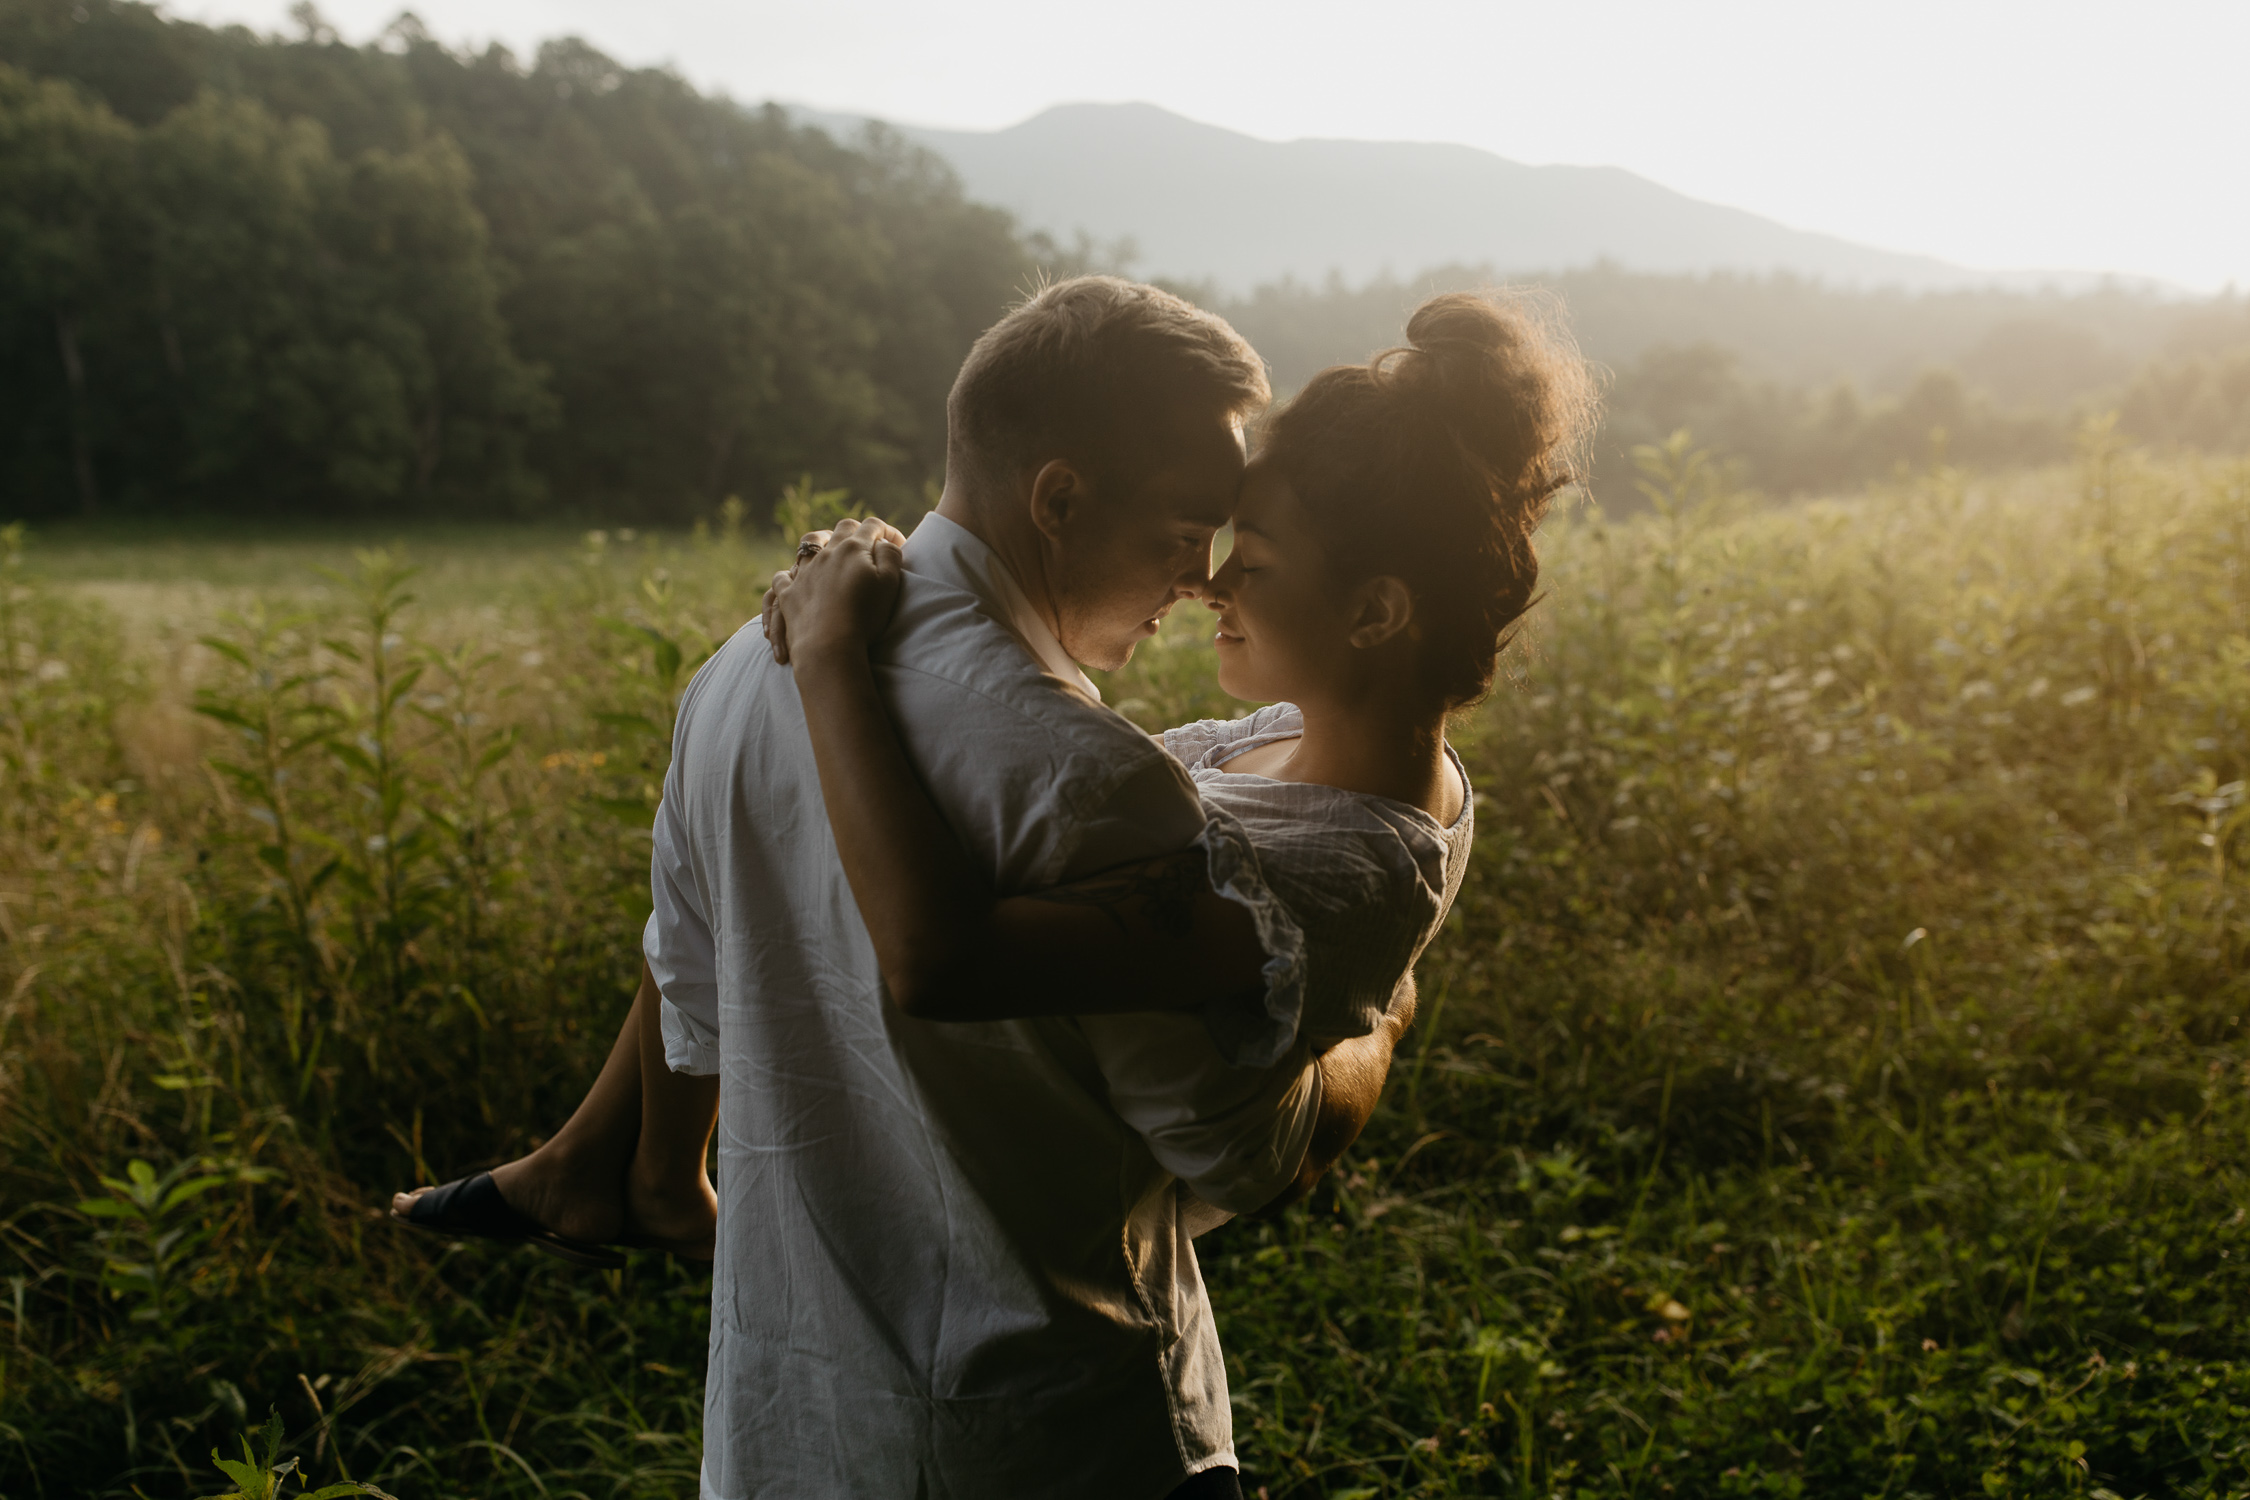 ariannamtorres and isaac engagement session at cades cove smoky mountains elopement-119.jpg